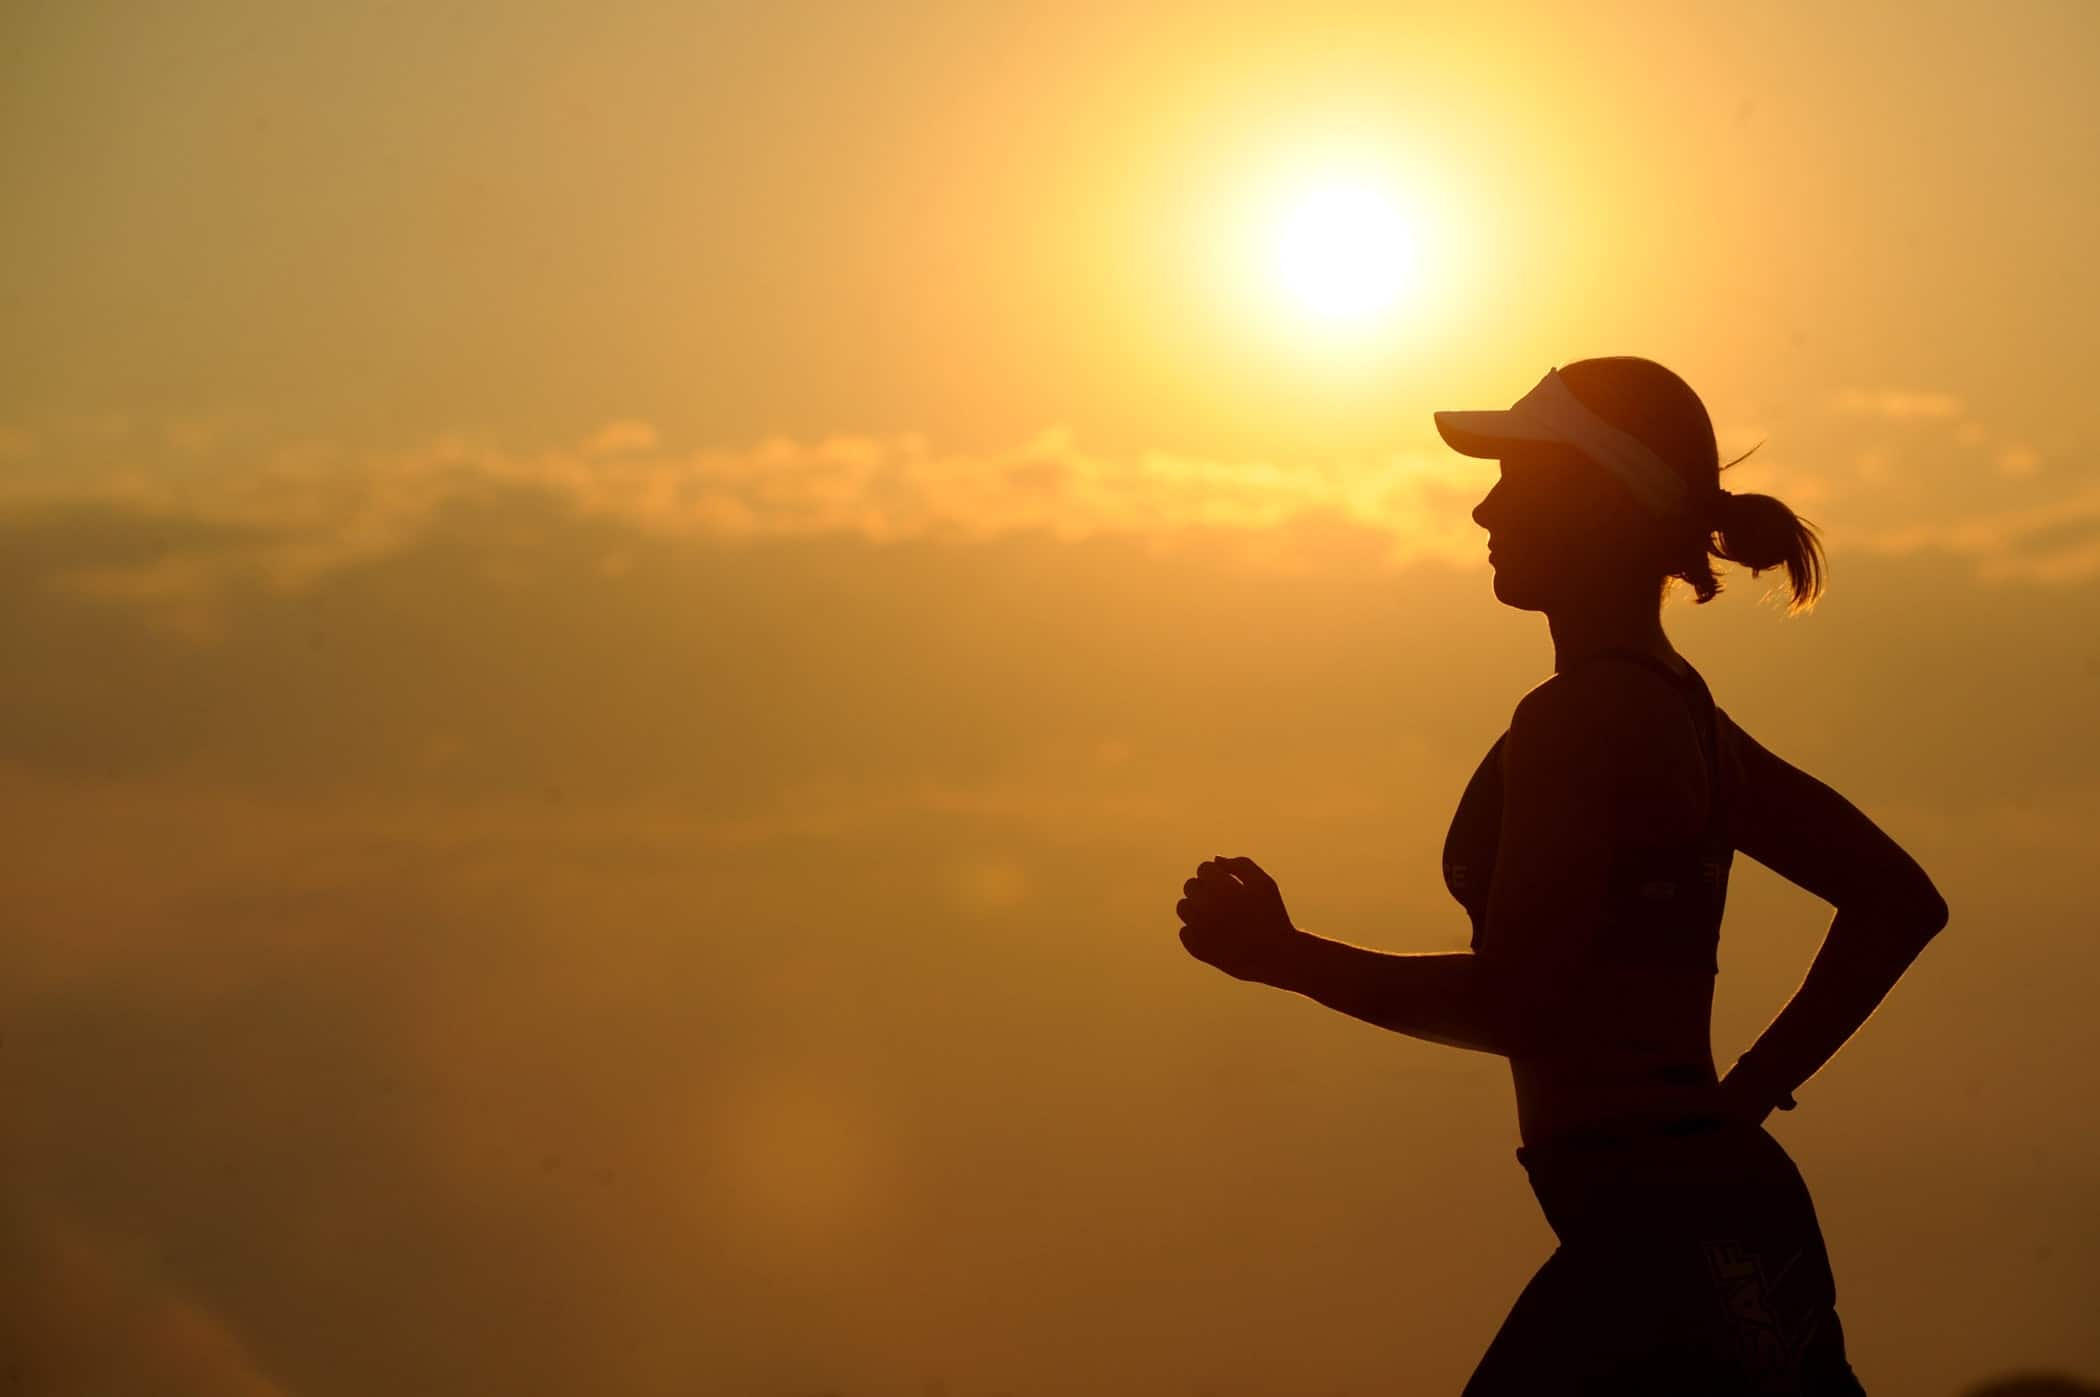 silhouette of woman running for exercise at sunset